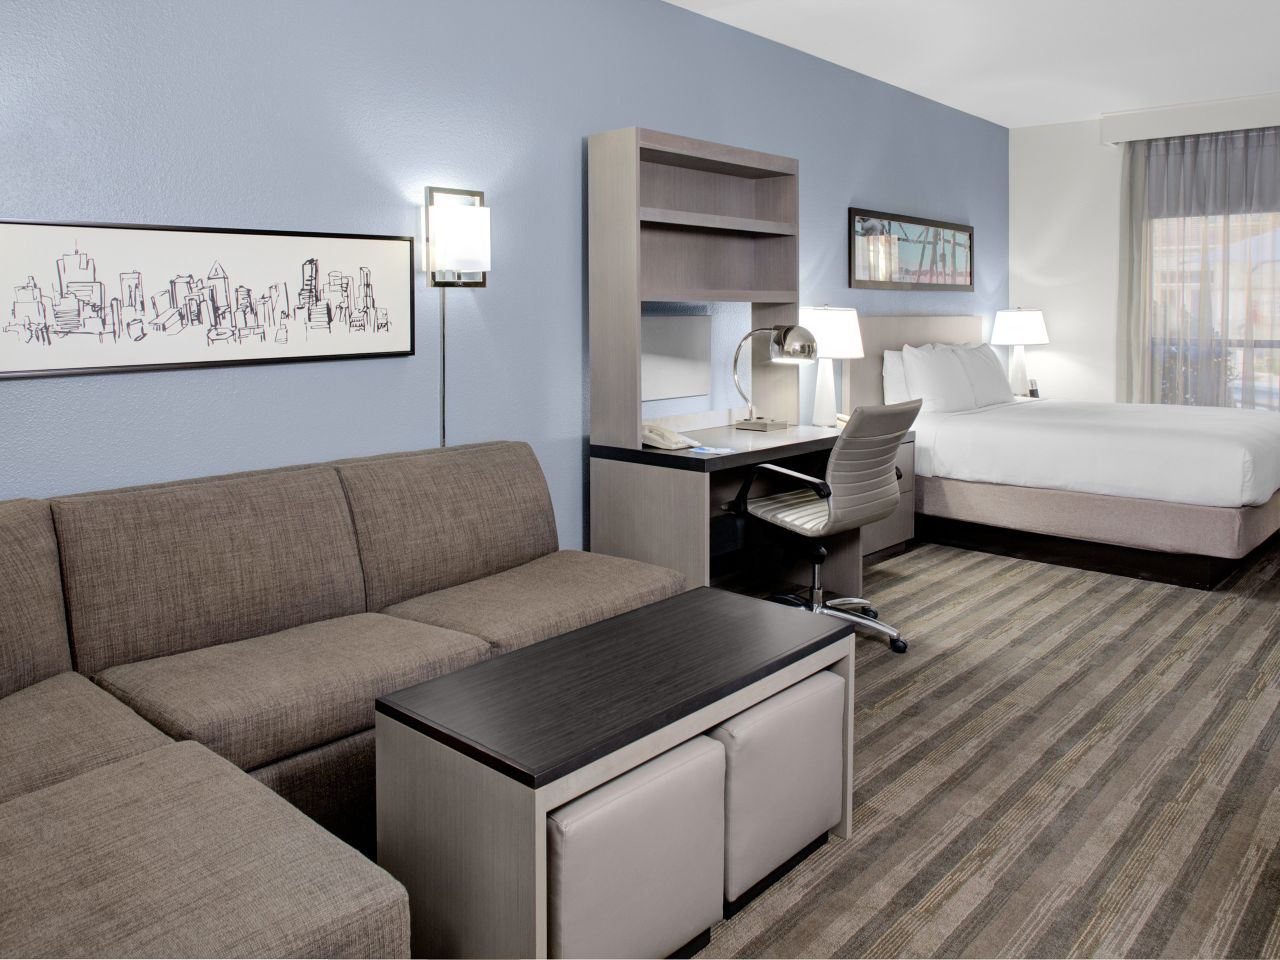 Hyatt House Dallas / Lincoln Park Studio King